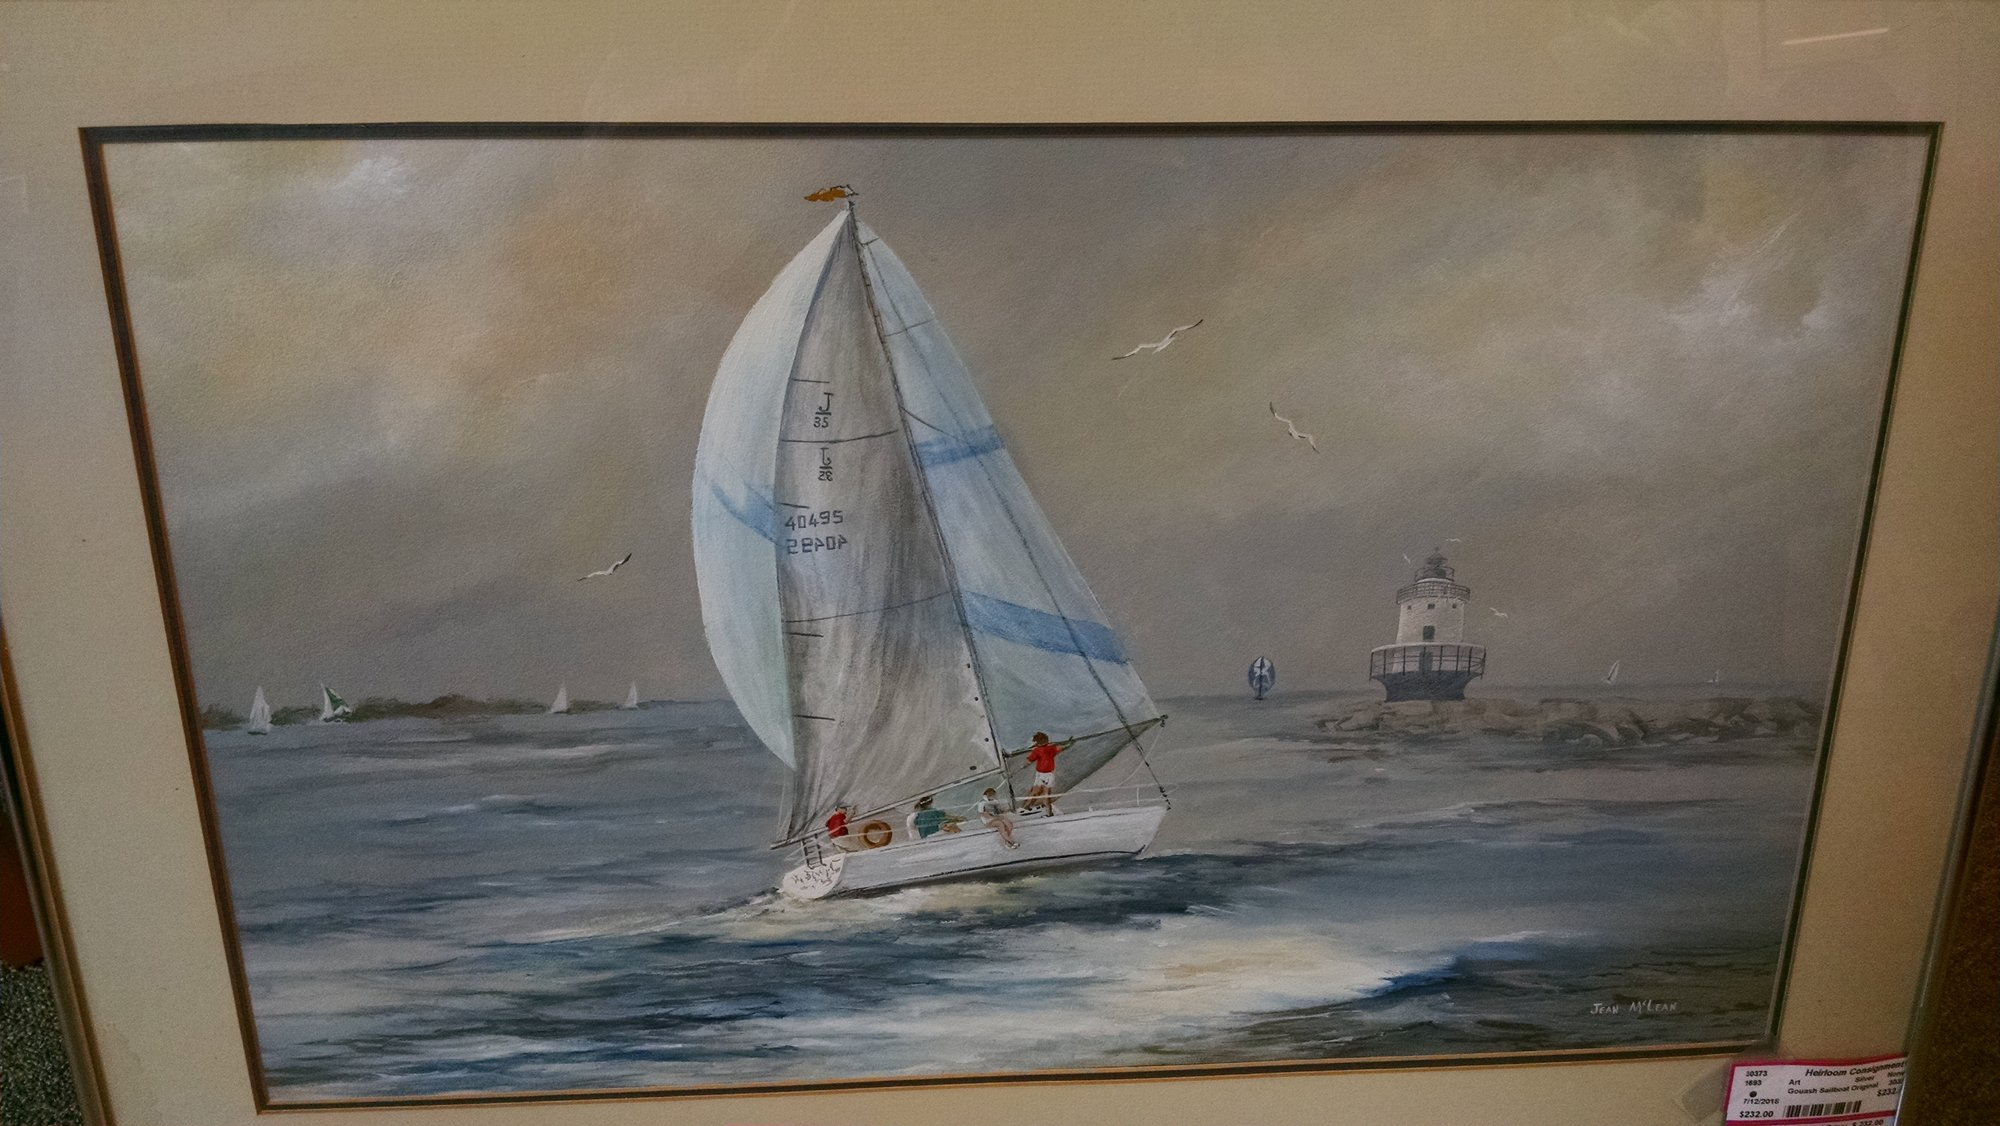 Beautiful gouash on board by Joan McLean. Great layering of color in the sky, water and sails of this lovely dipiction of a summers day.